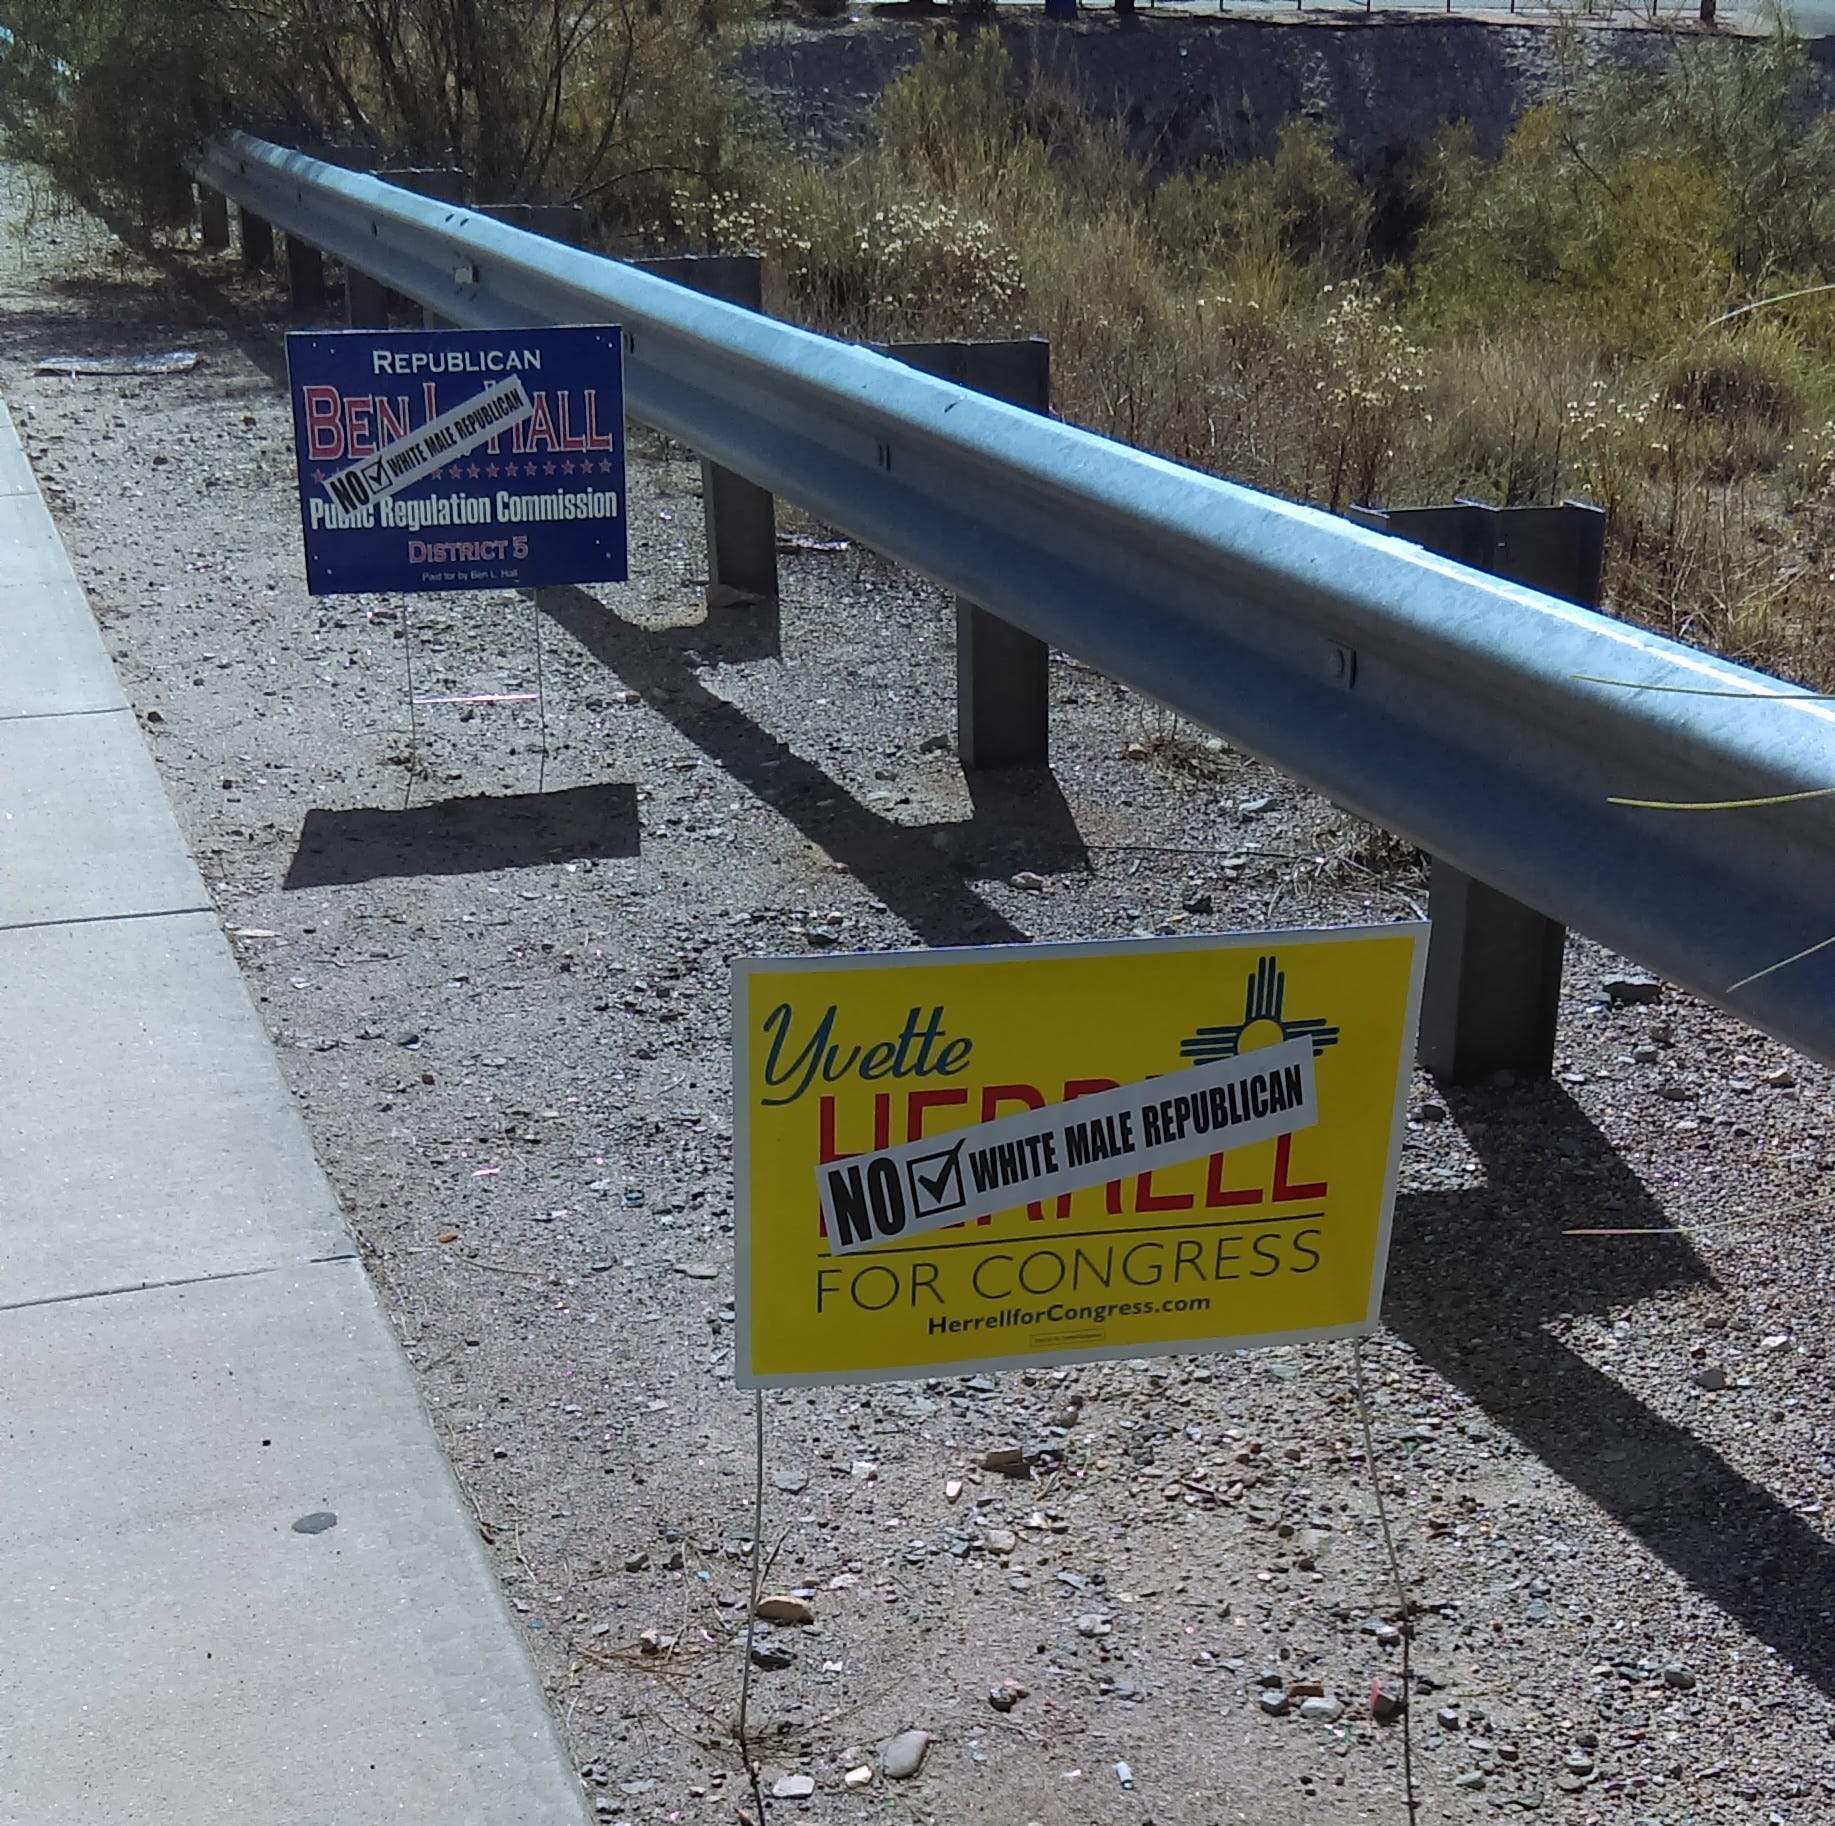 Stickers decrying white males placed on Yvette Herrell political sign